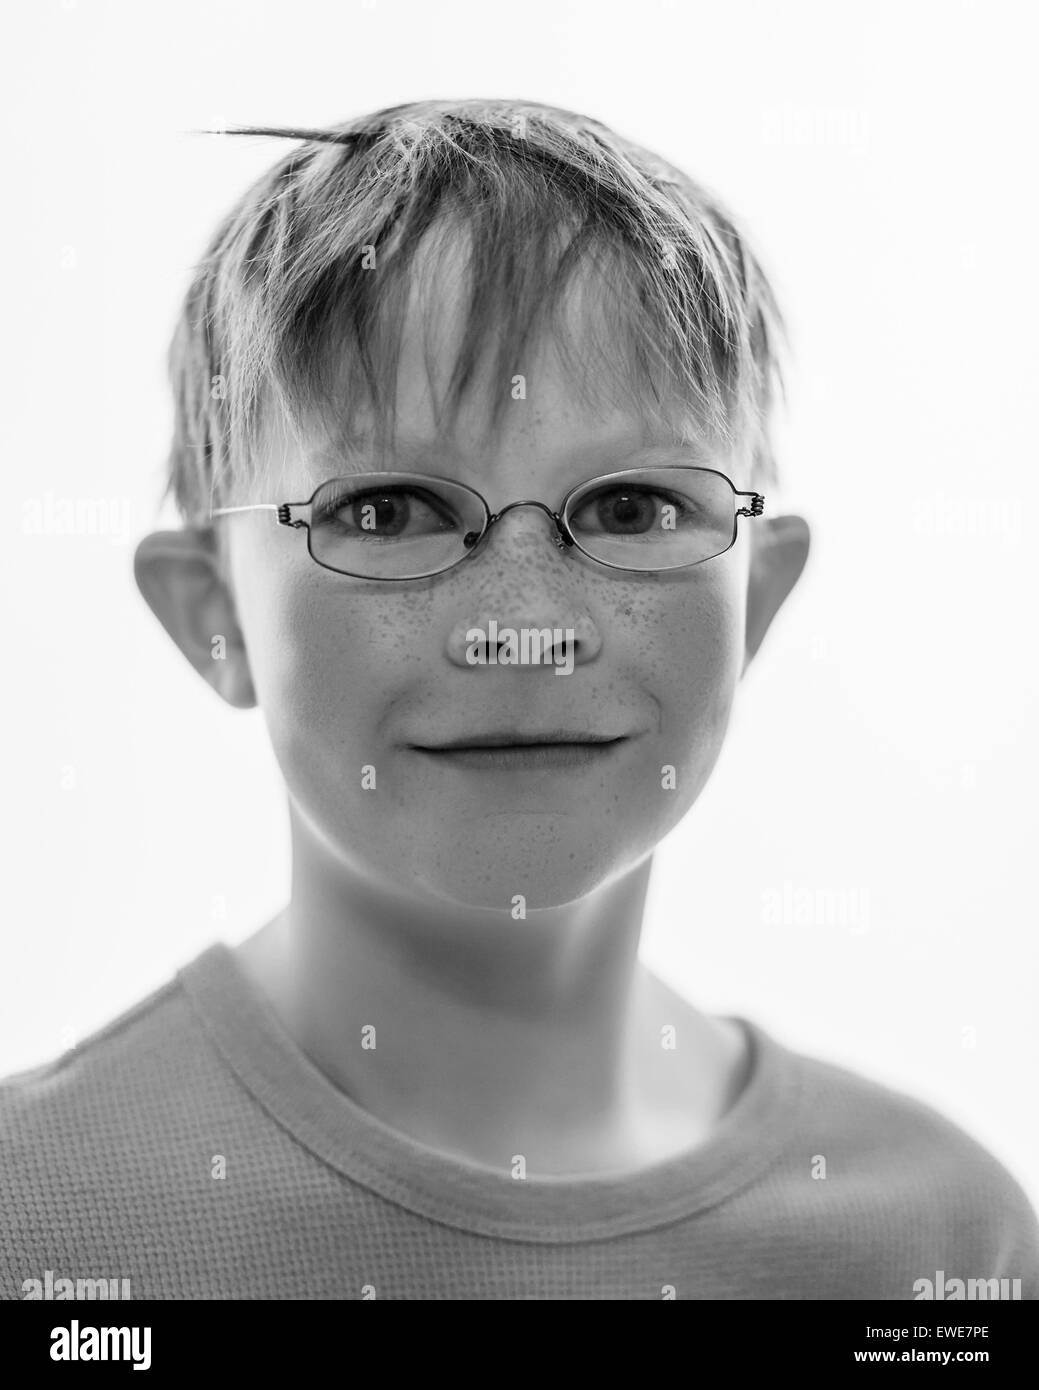 Black and white portrait of 9 year old Icelandic boy with glasses. - Stock Image